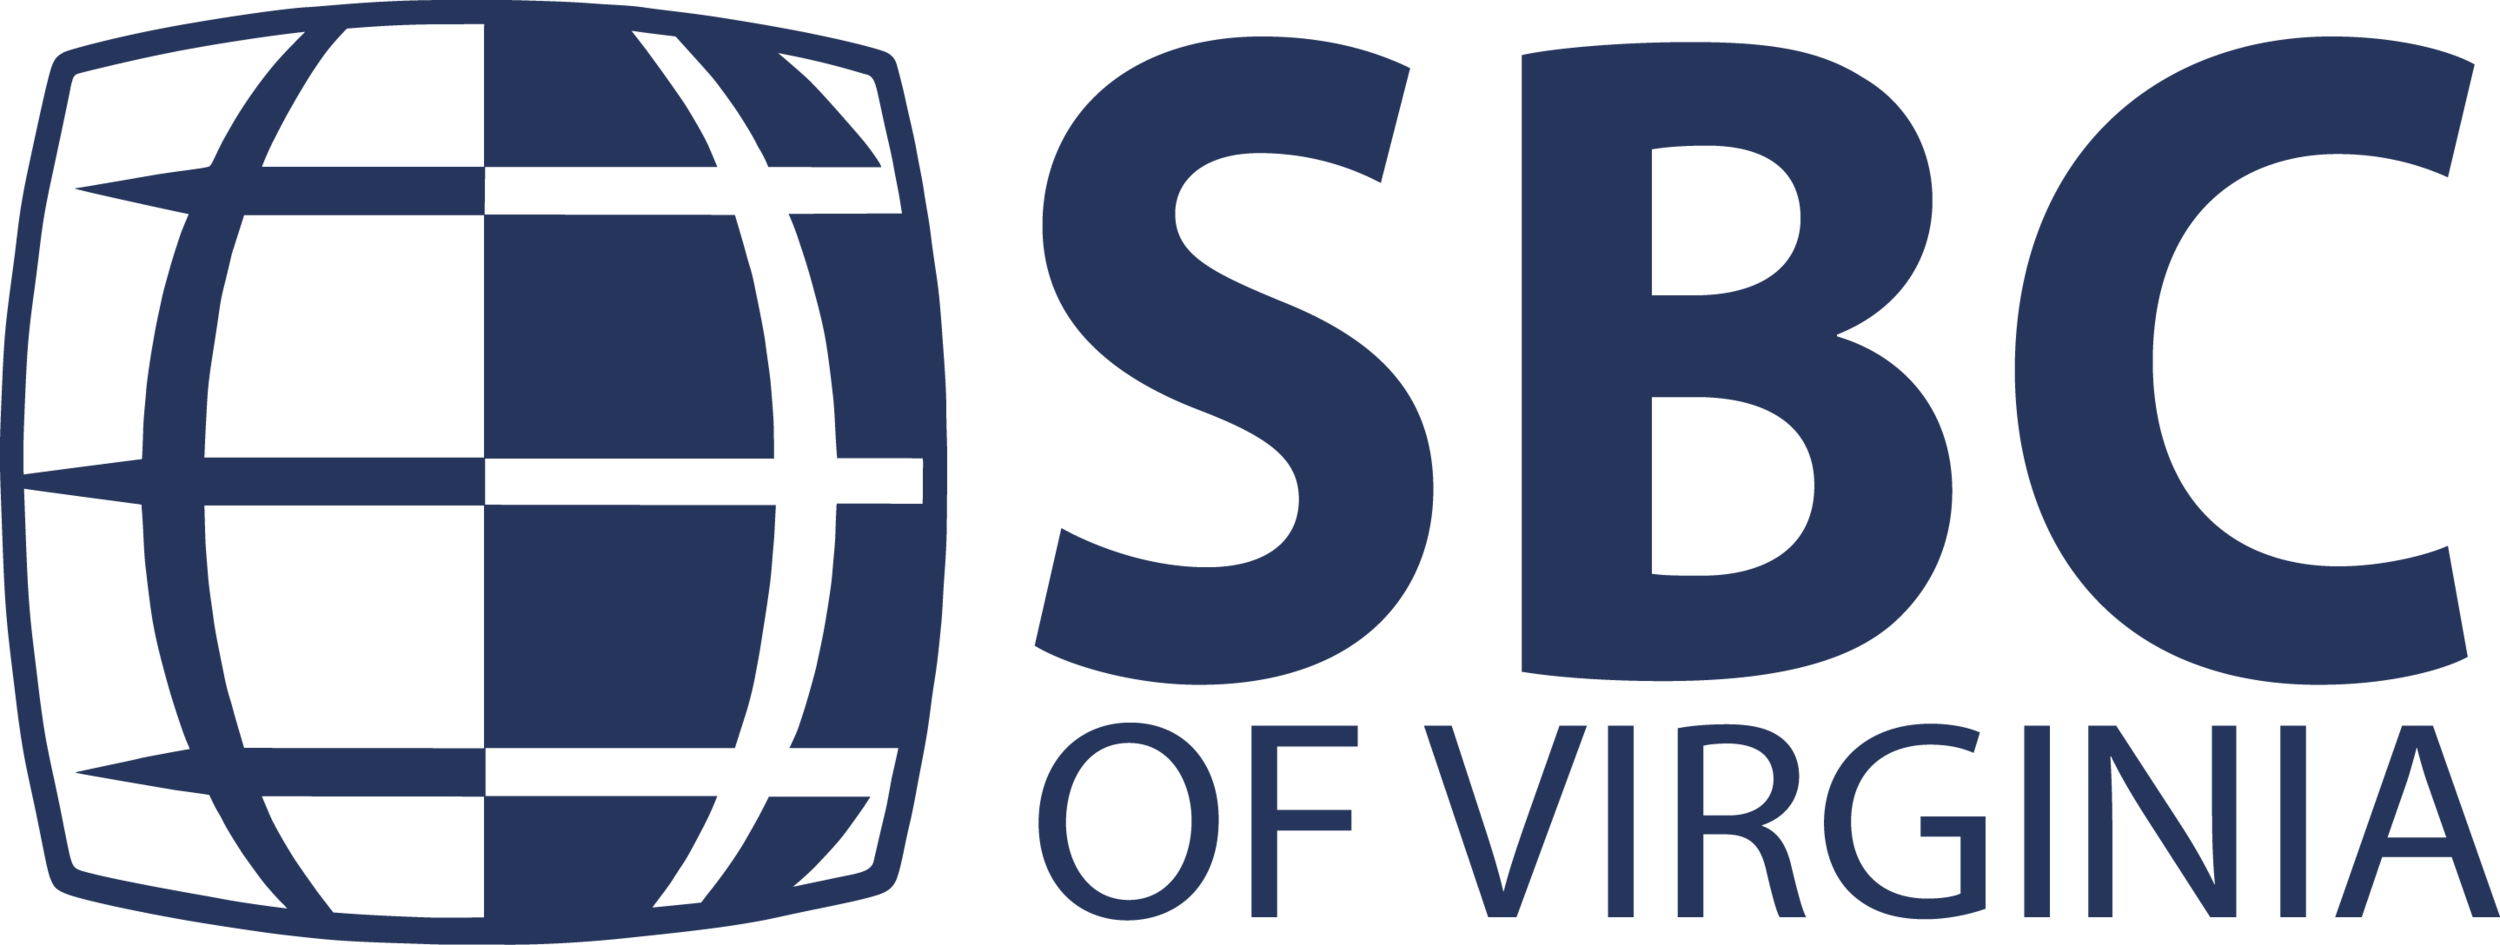 SBCV-Logo-CORE-10in.png